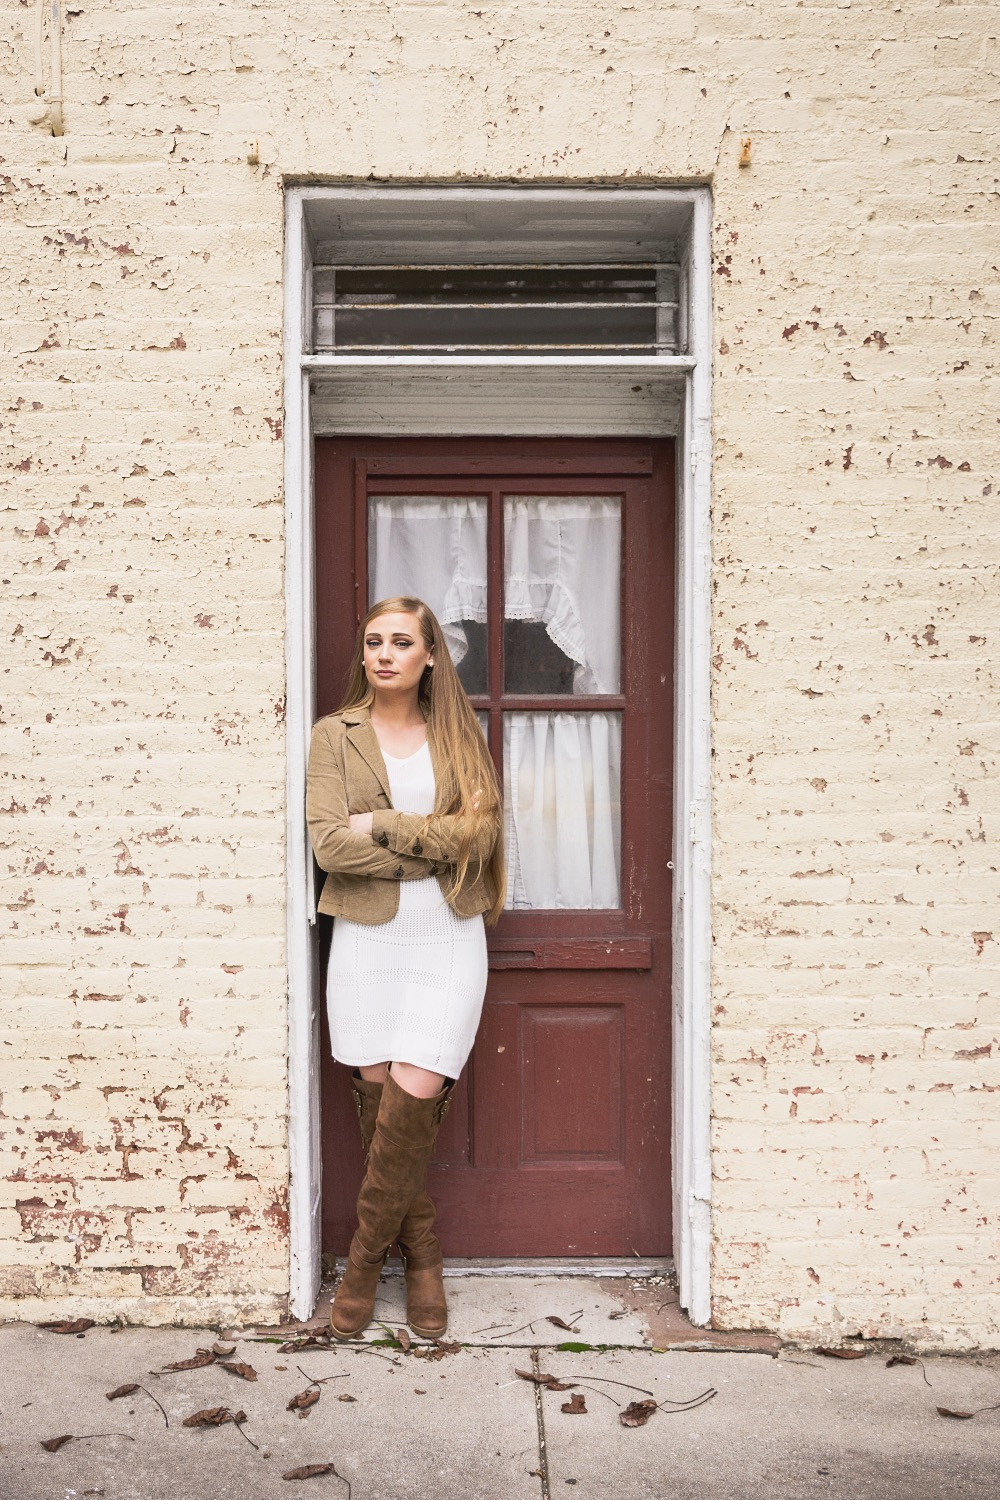 boots, fall, fall outfit, autumn, theheilstyle, April M. Heil, White Mountain, shoes, White Mountain Shoes, white dress, blazer, dressy, pretty, blonde, happy, photography, outdoors, Pennsylvania, fashion blog, blogger, top bloggers, top fashion bloggers, MacBook Air, Apple, Apple computer